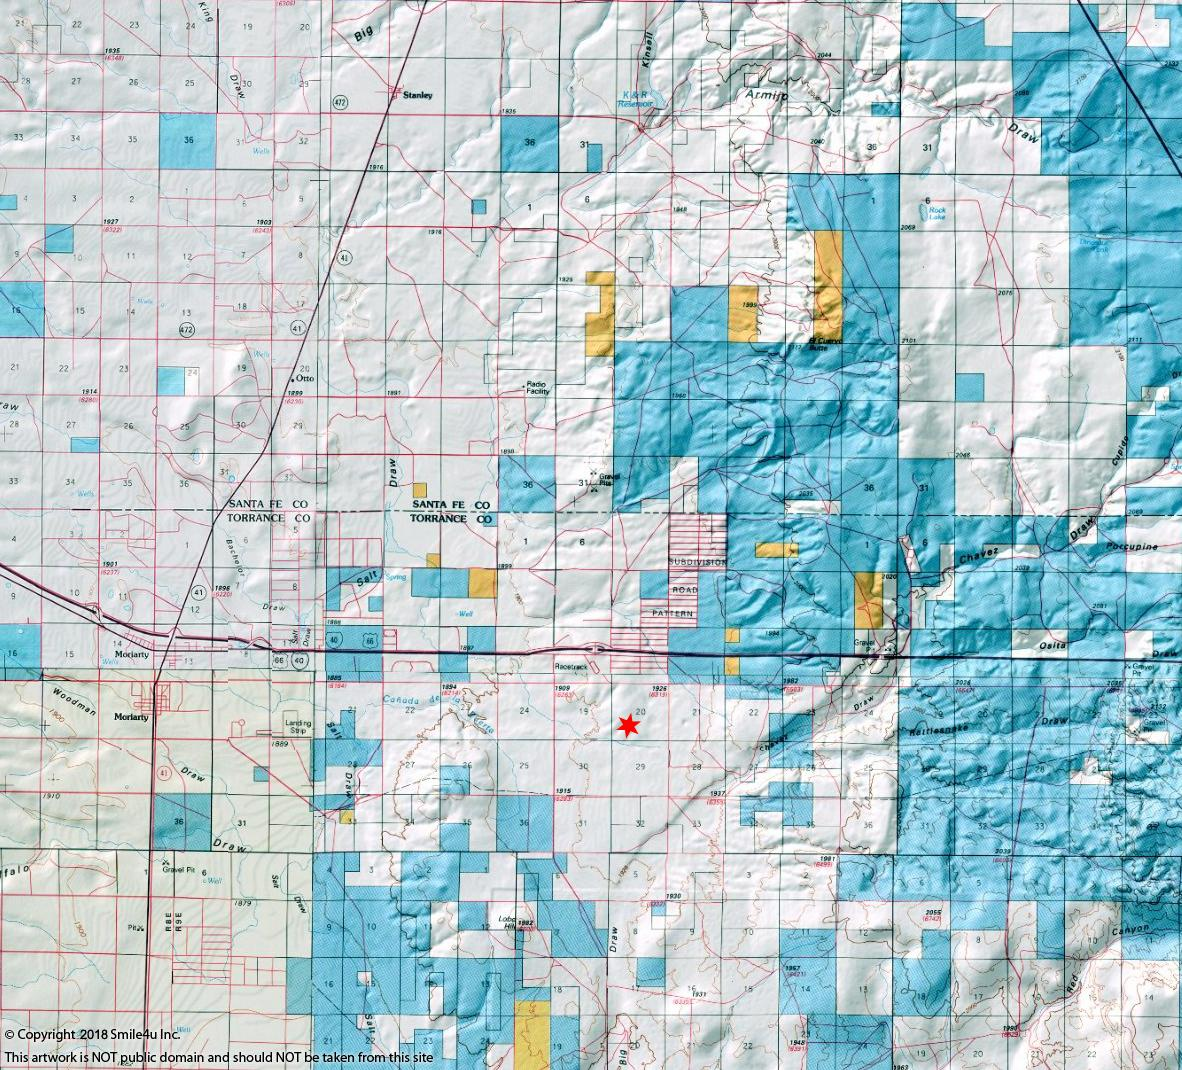 530474_watermarked_BLM map.jpg